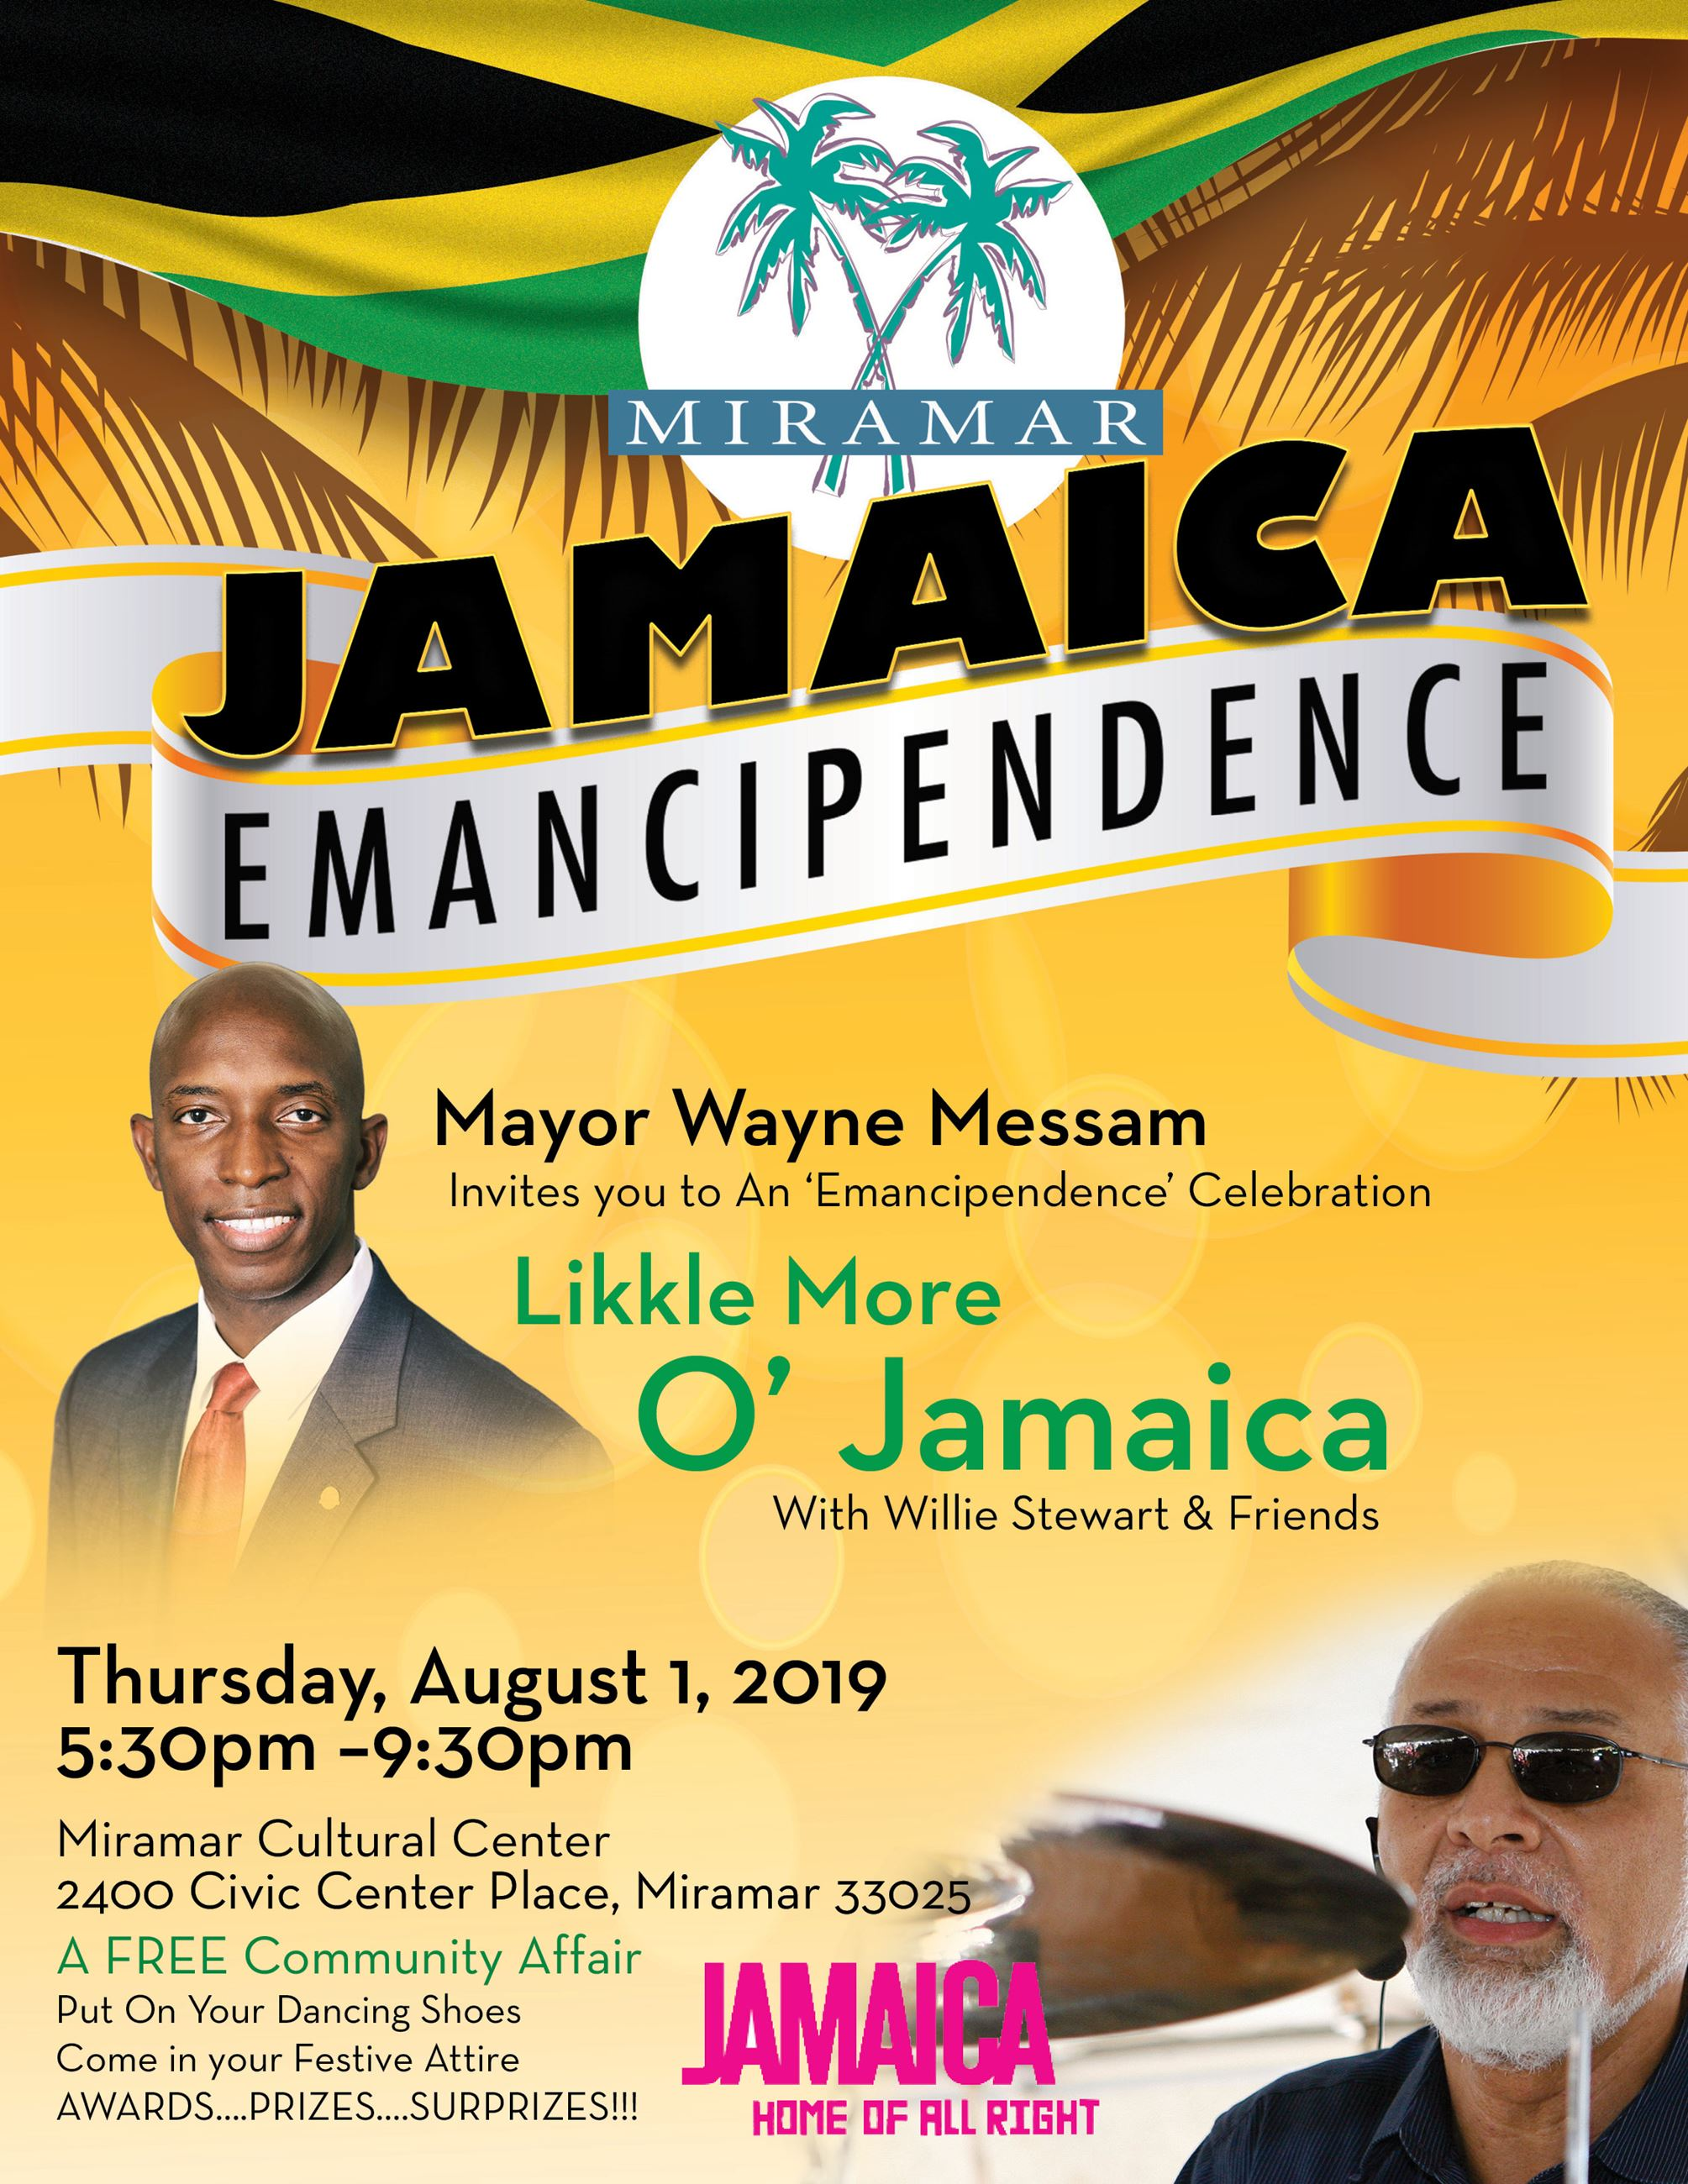 Mayor Messam Initiative - Jamaica Emancipendence August 1